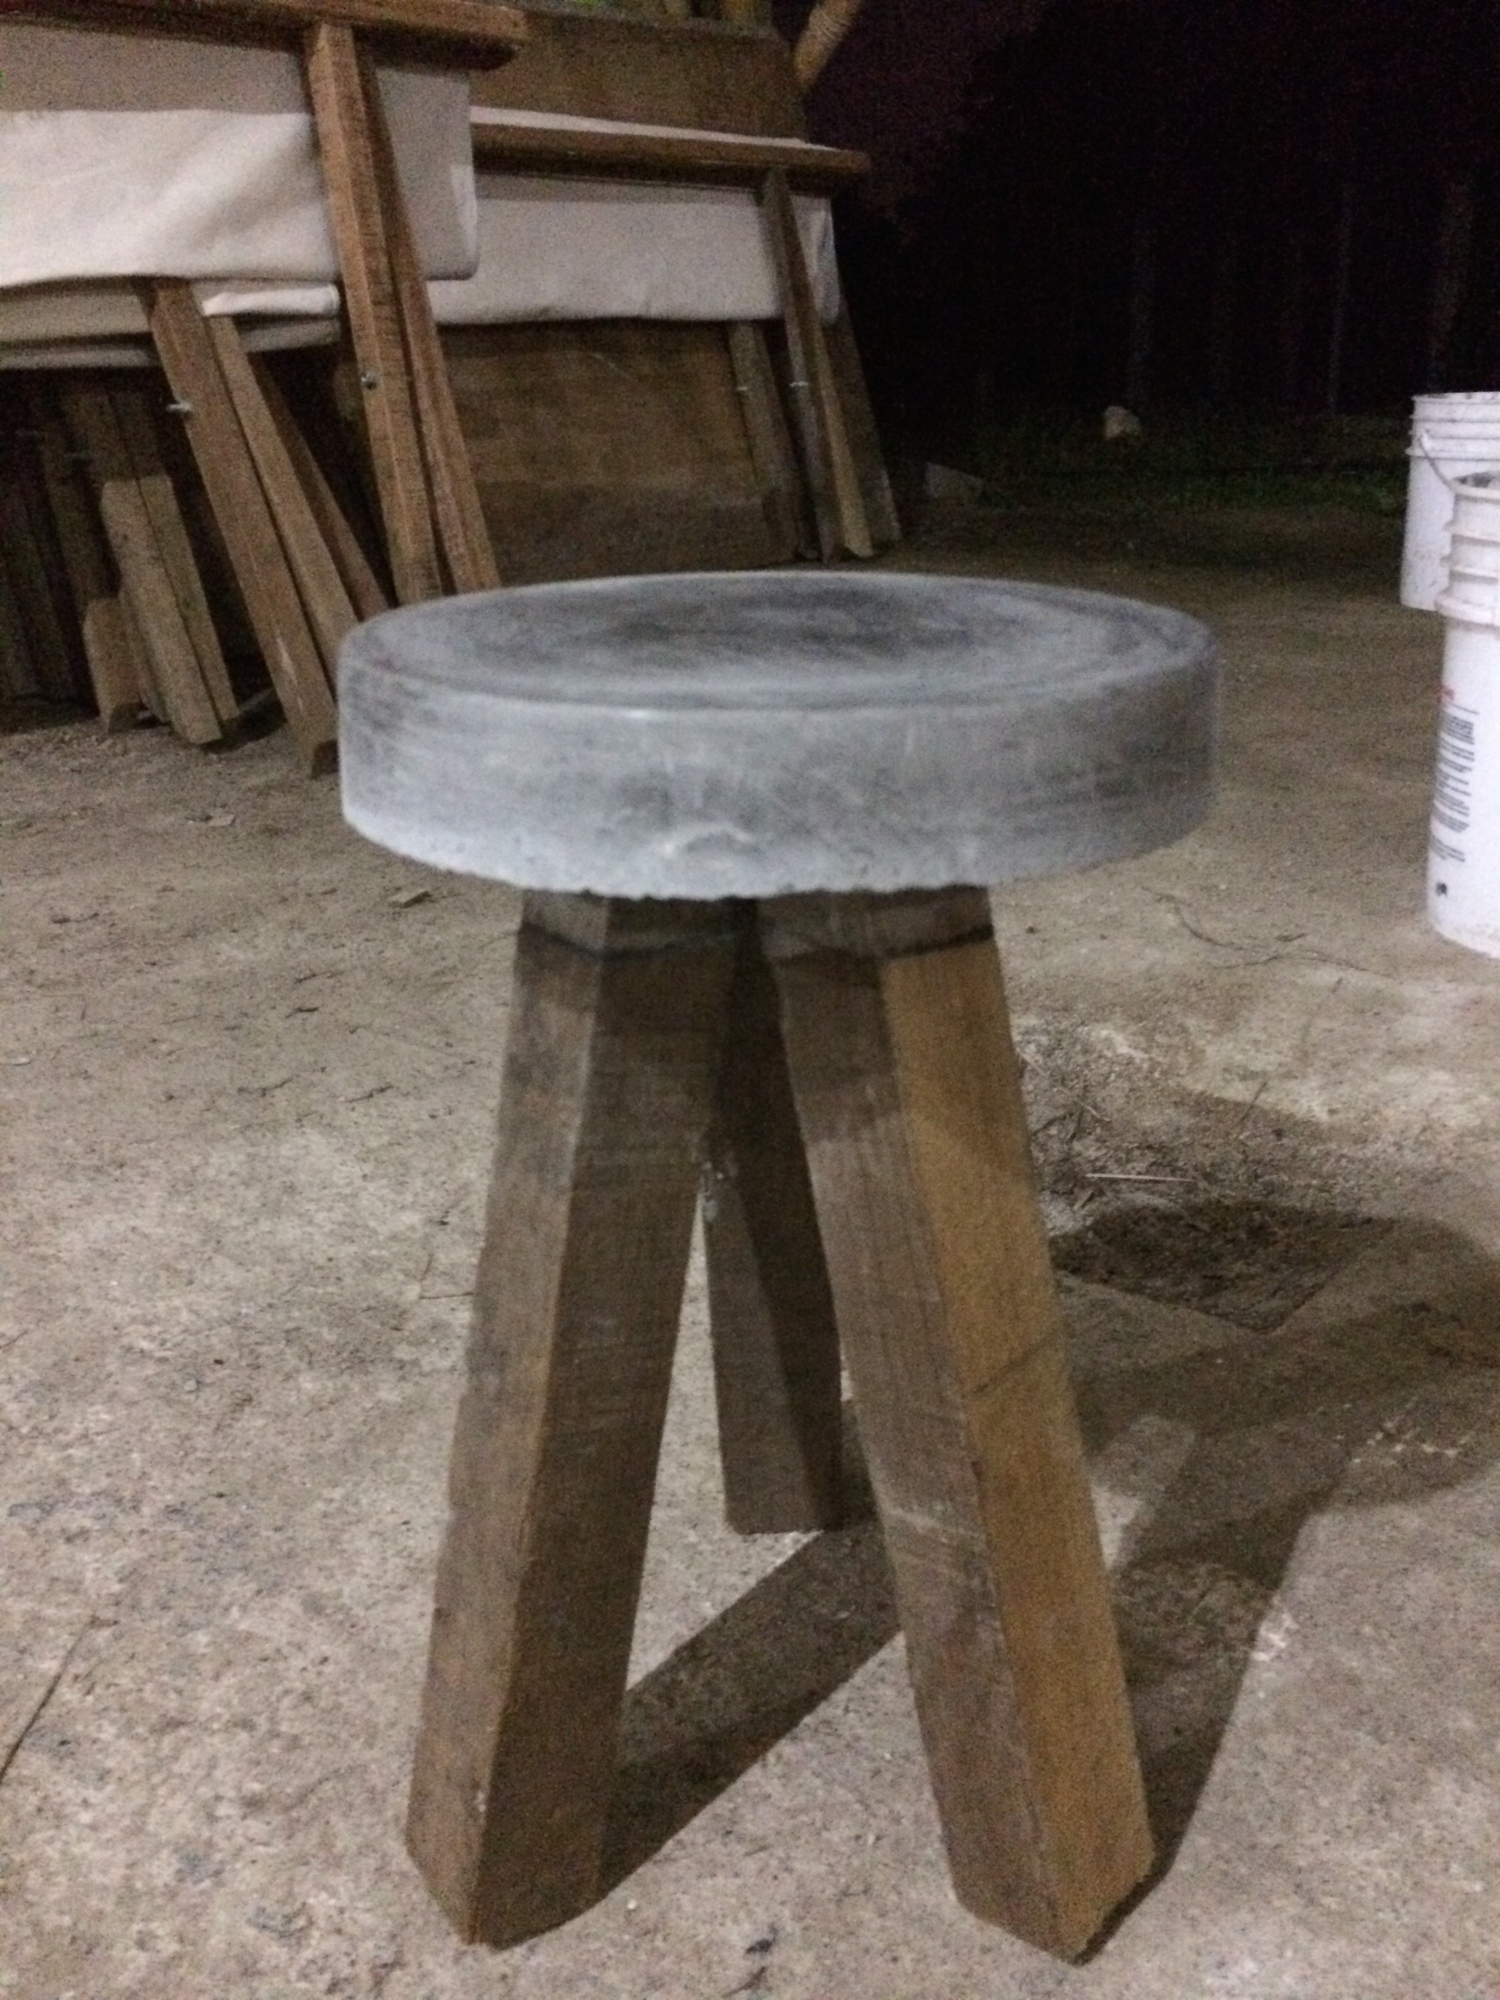 Our stools were a (somewhat wobbly) success!